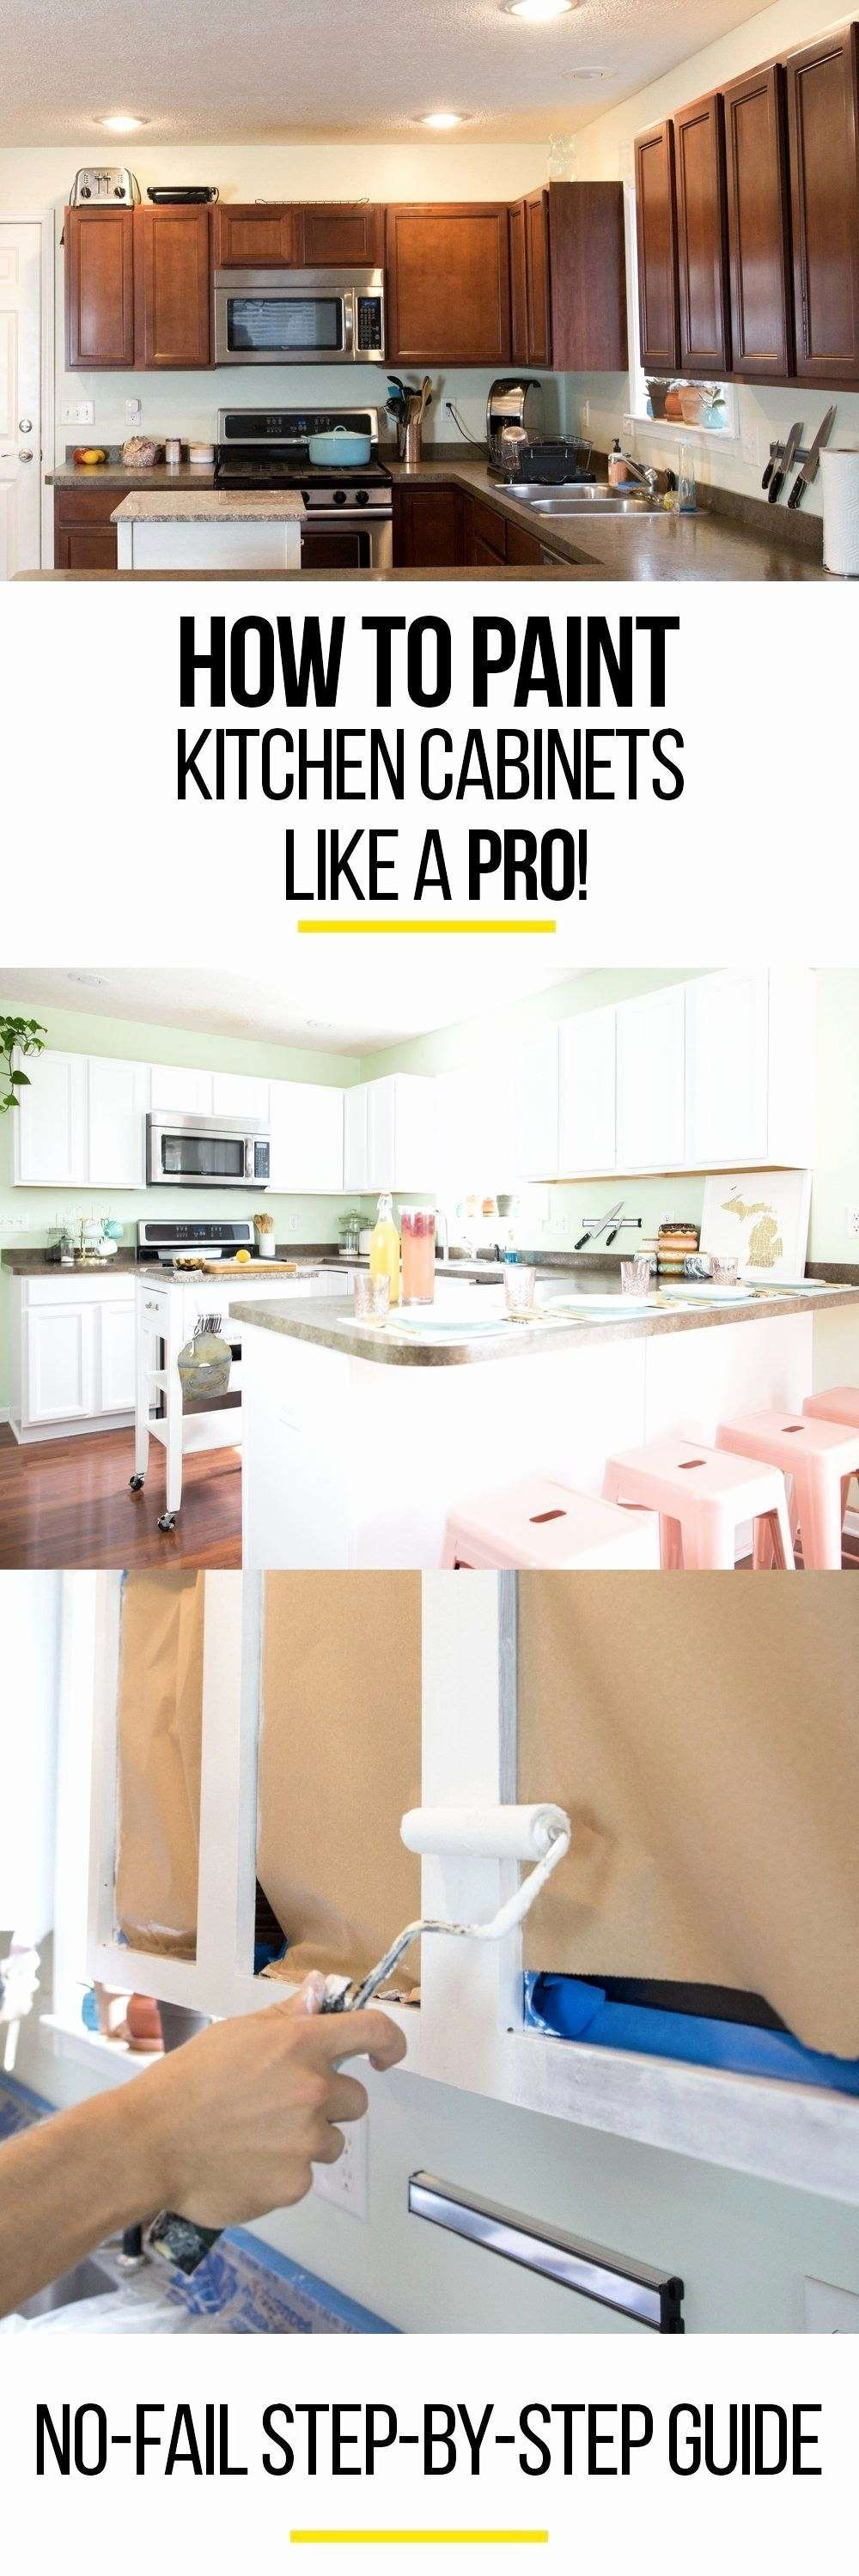 Best Degreaser For Kitchen Cabinets Before Painting   Top ...